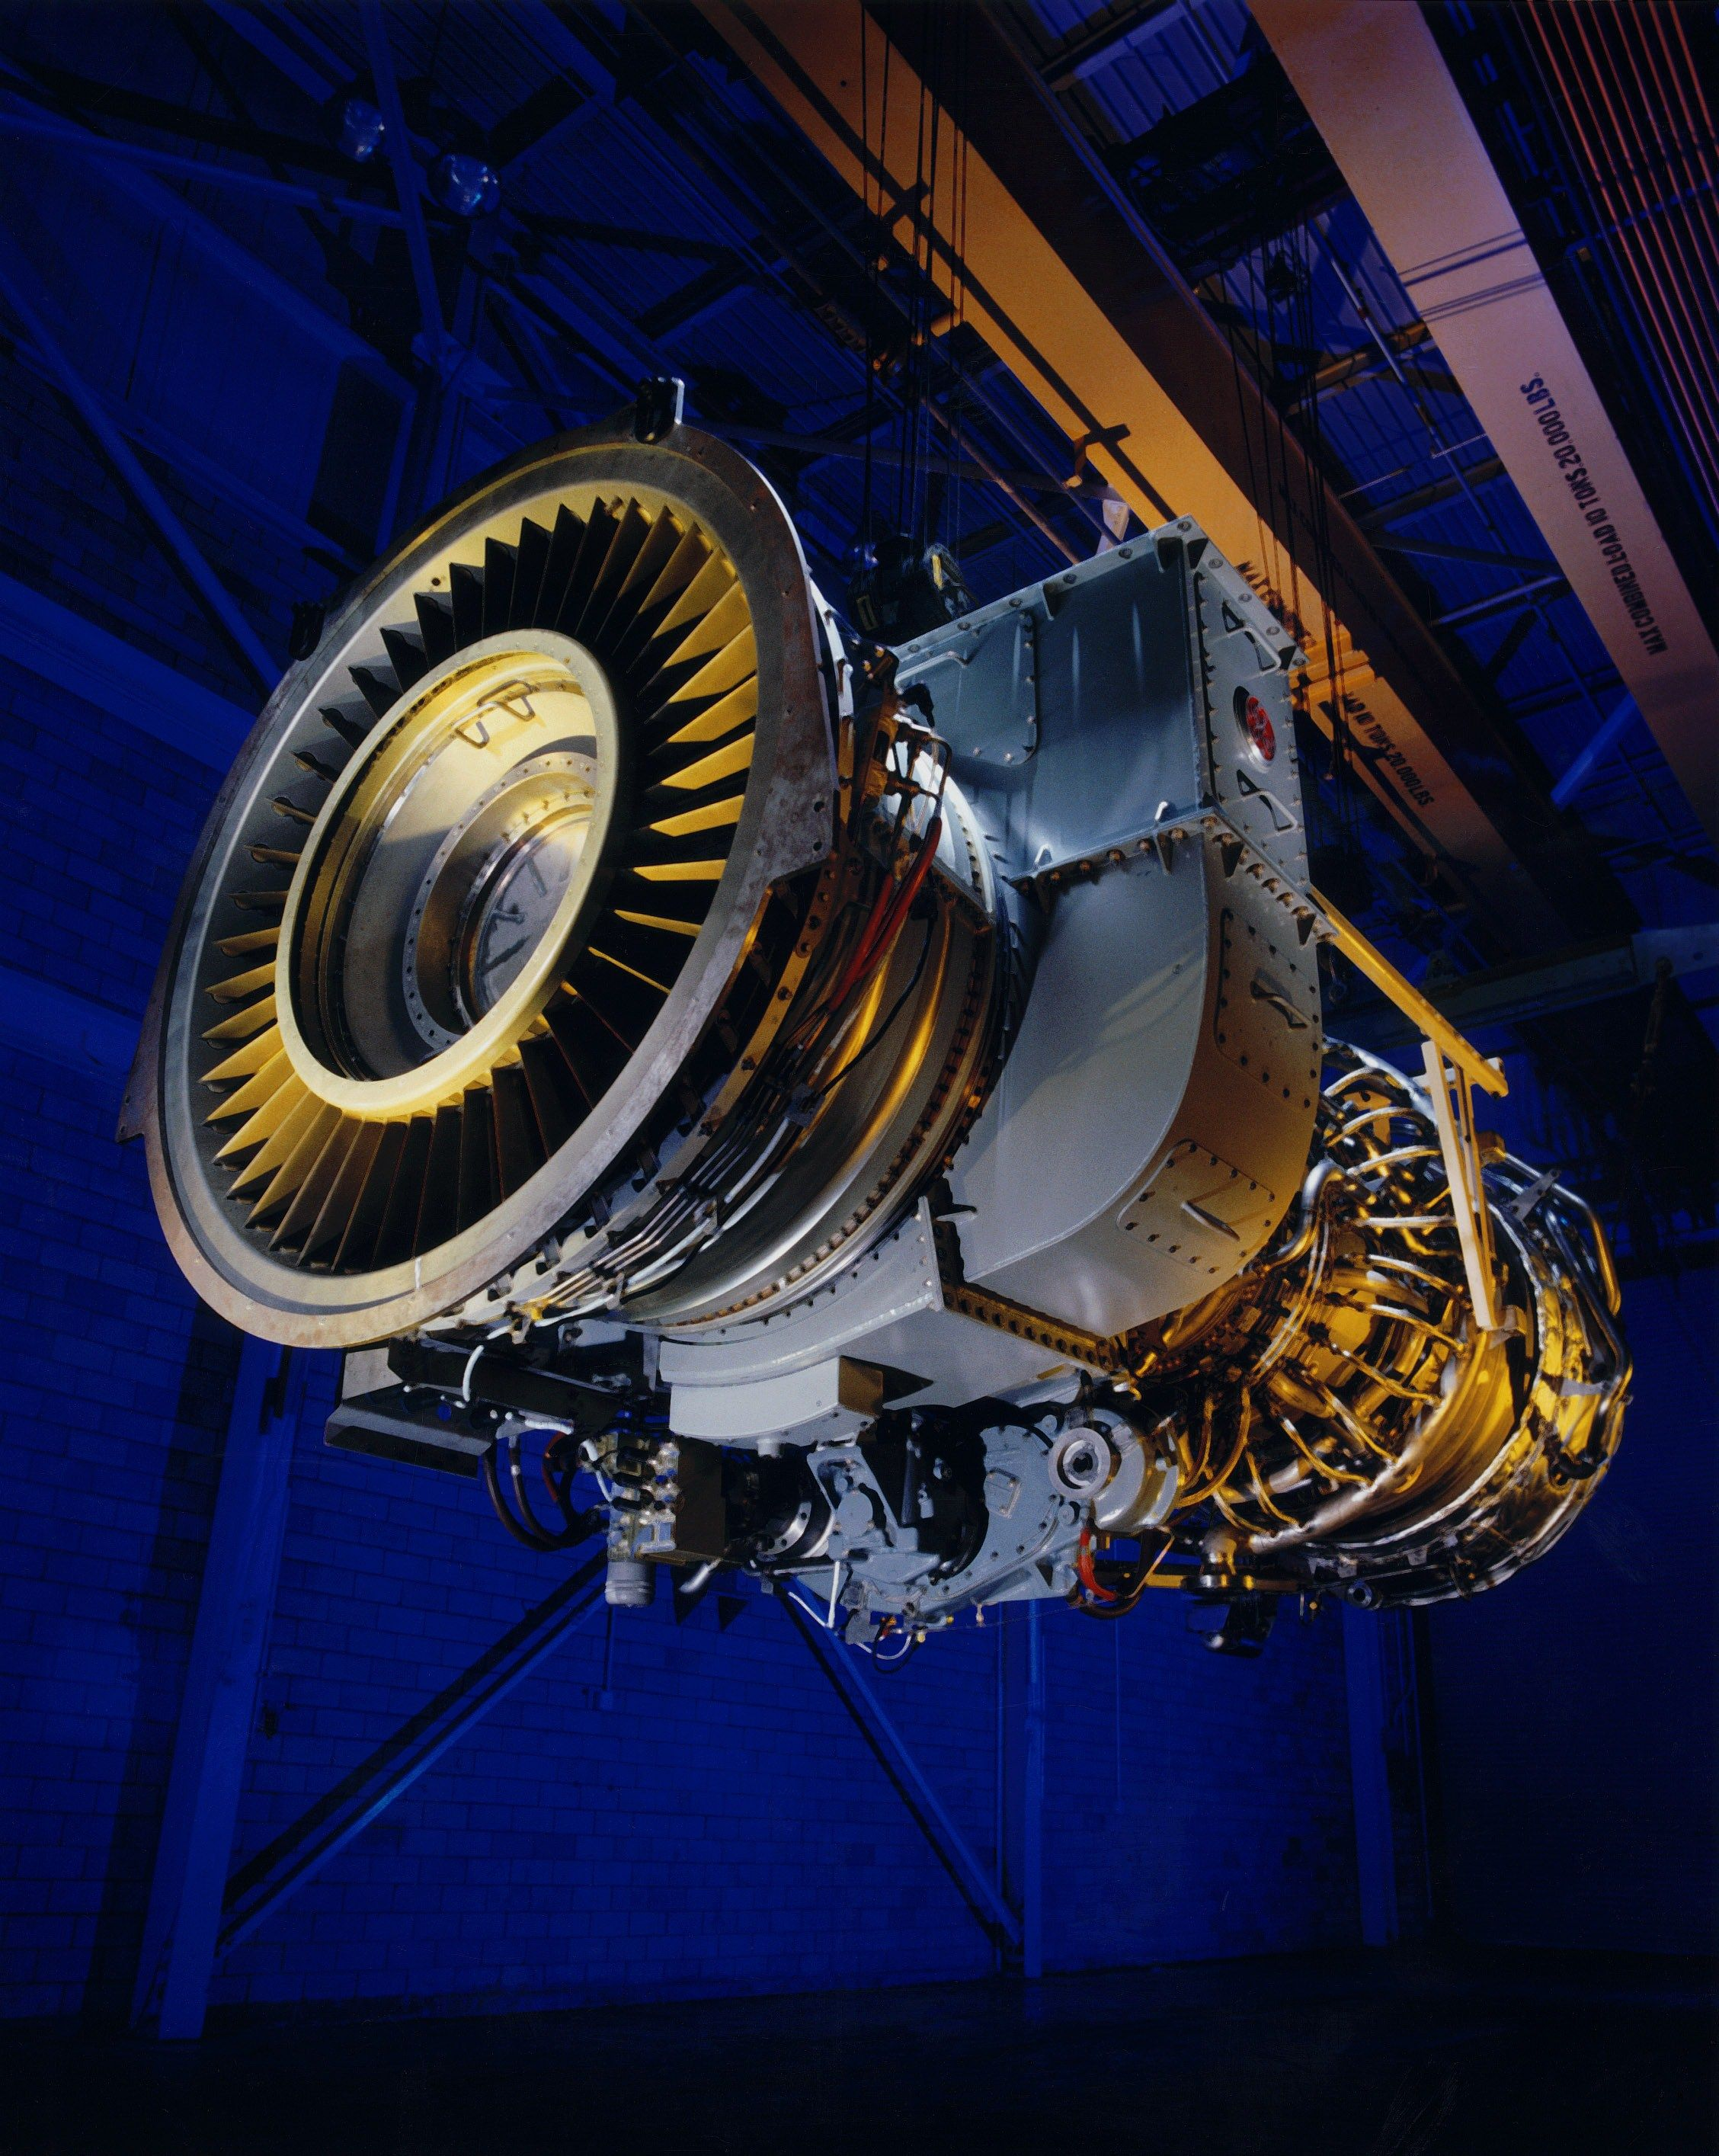 GE s flexible and efficient LM6000 PF aeroderivative gas turbine